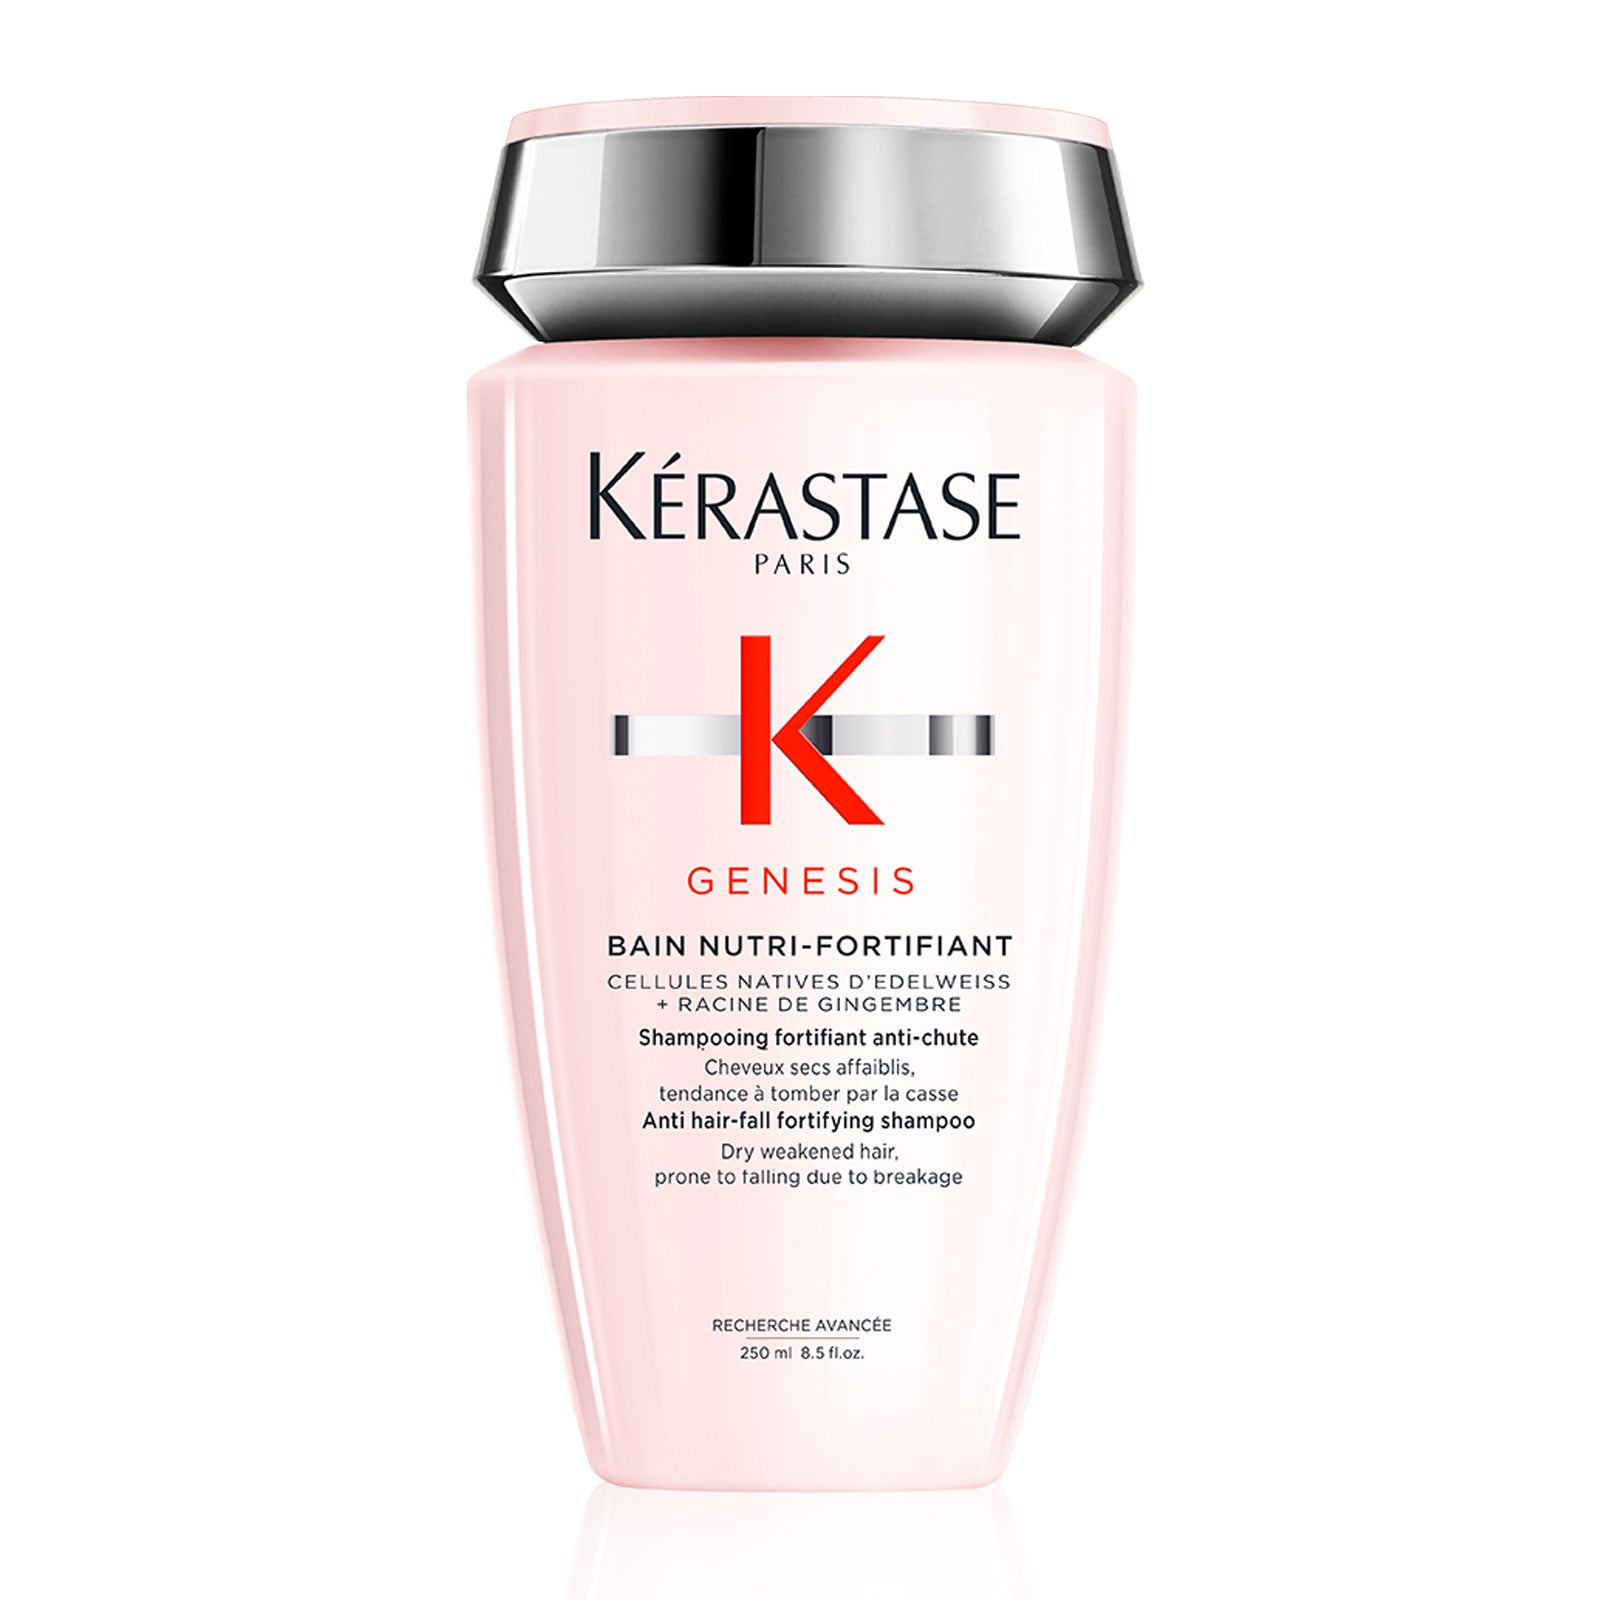 Kérastase Genesis Anti Hair-Fall Fortifying Shampoo 250ml